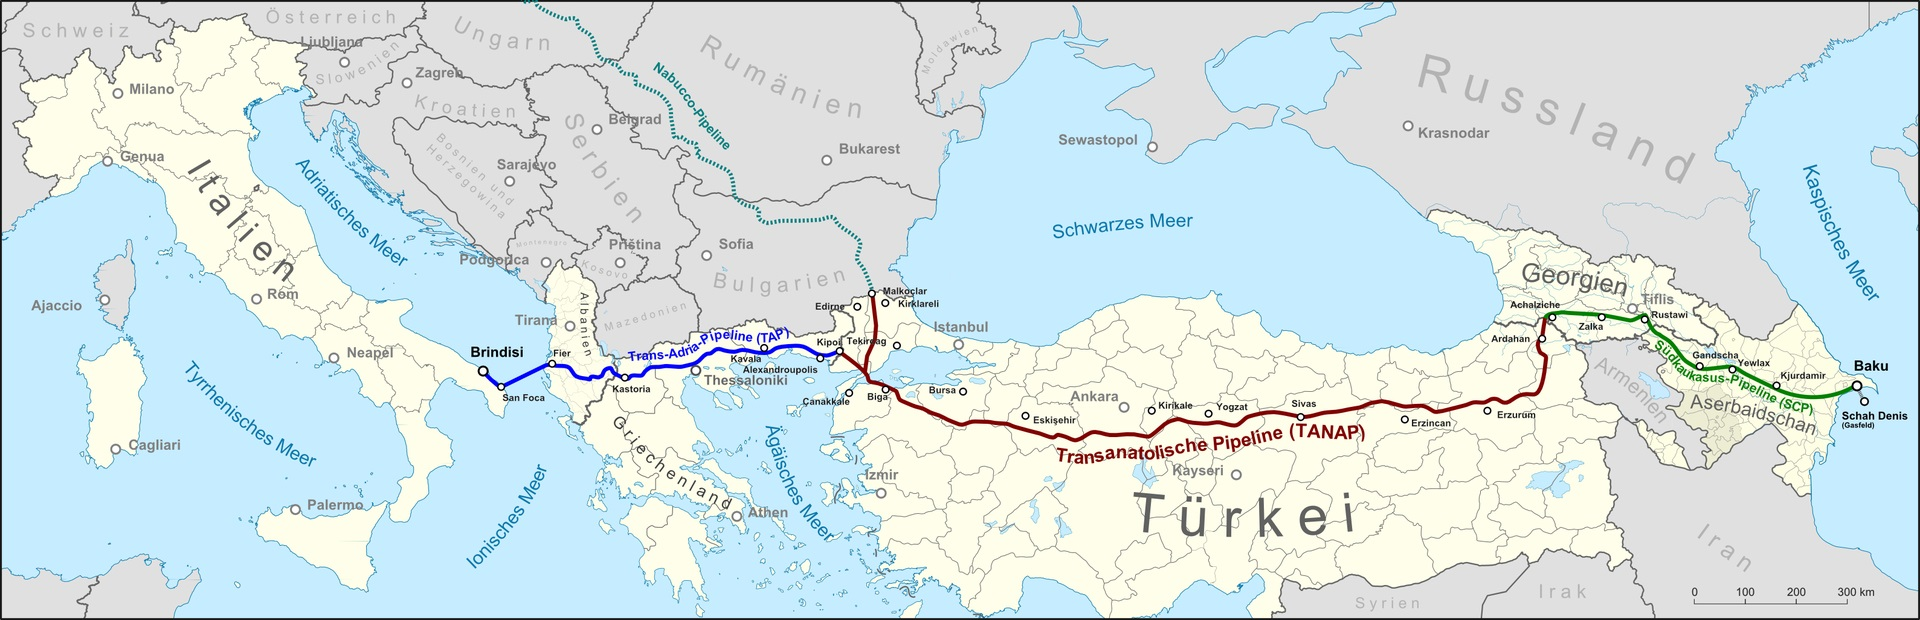 Shah Deniz gas field, the route of the South Caucasus Pipeline (SCP), the Trans-Anatolian gas pipeline (TANAP) and the planned Trans Adriatic Pipeline (TAP), as well as Nabucco pipeline. CC 2.0 (click for better resolution)